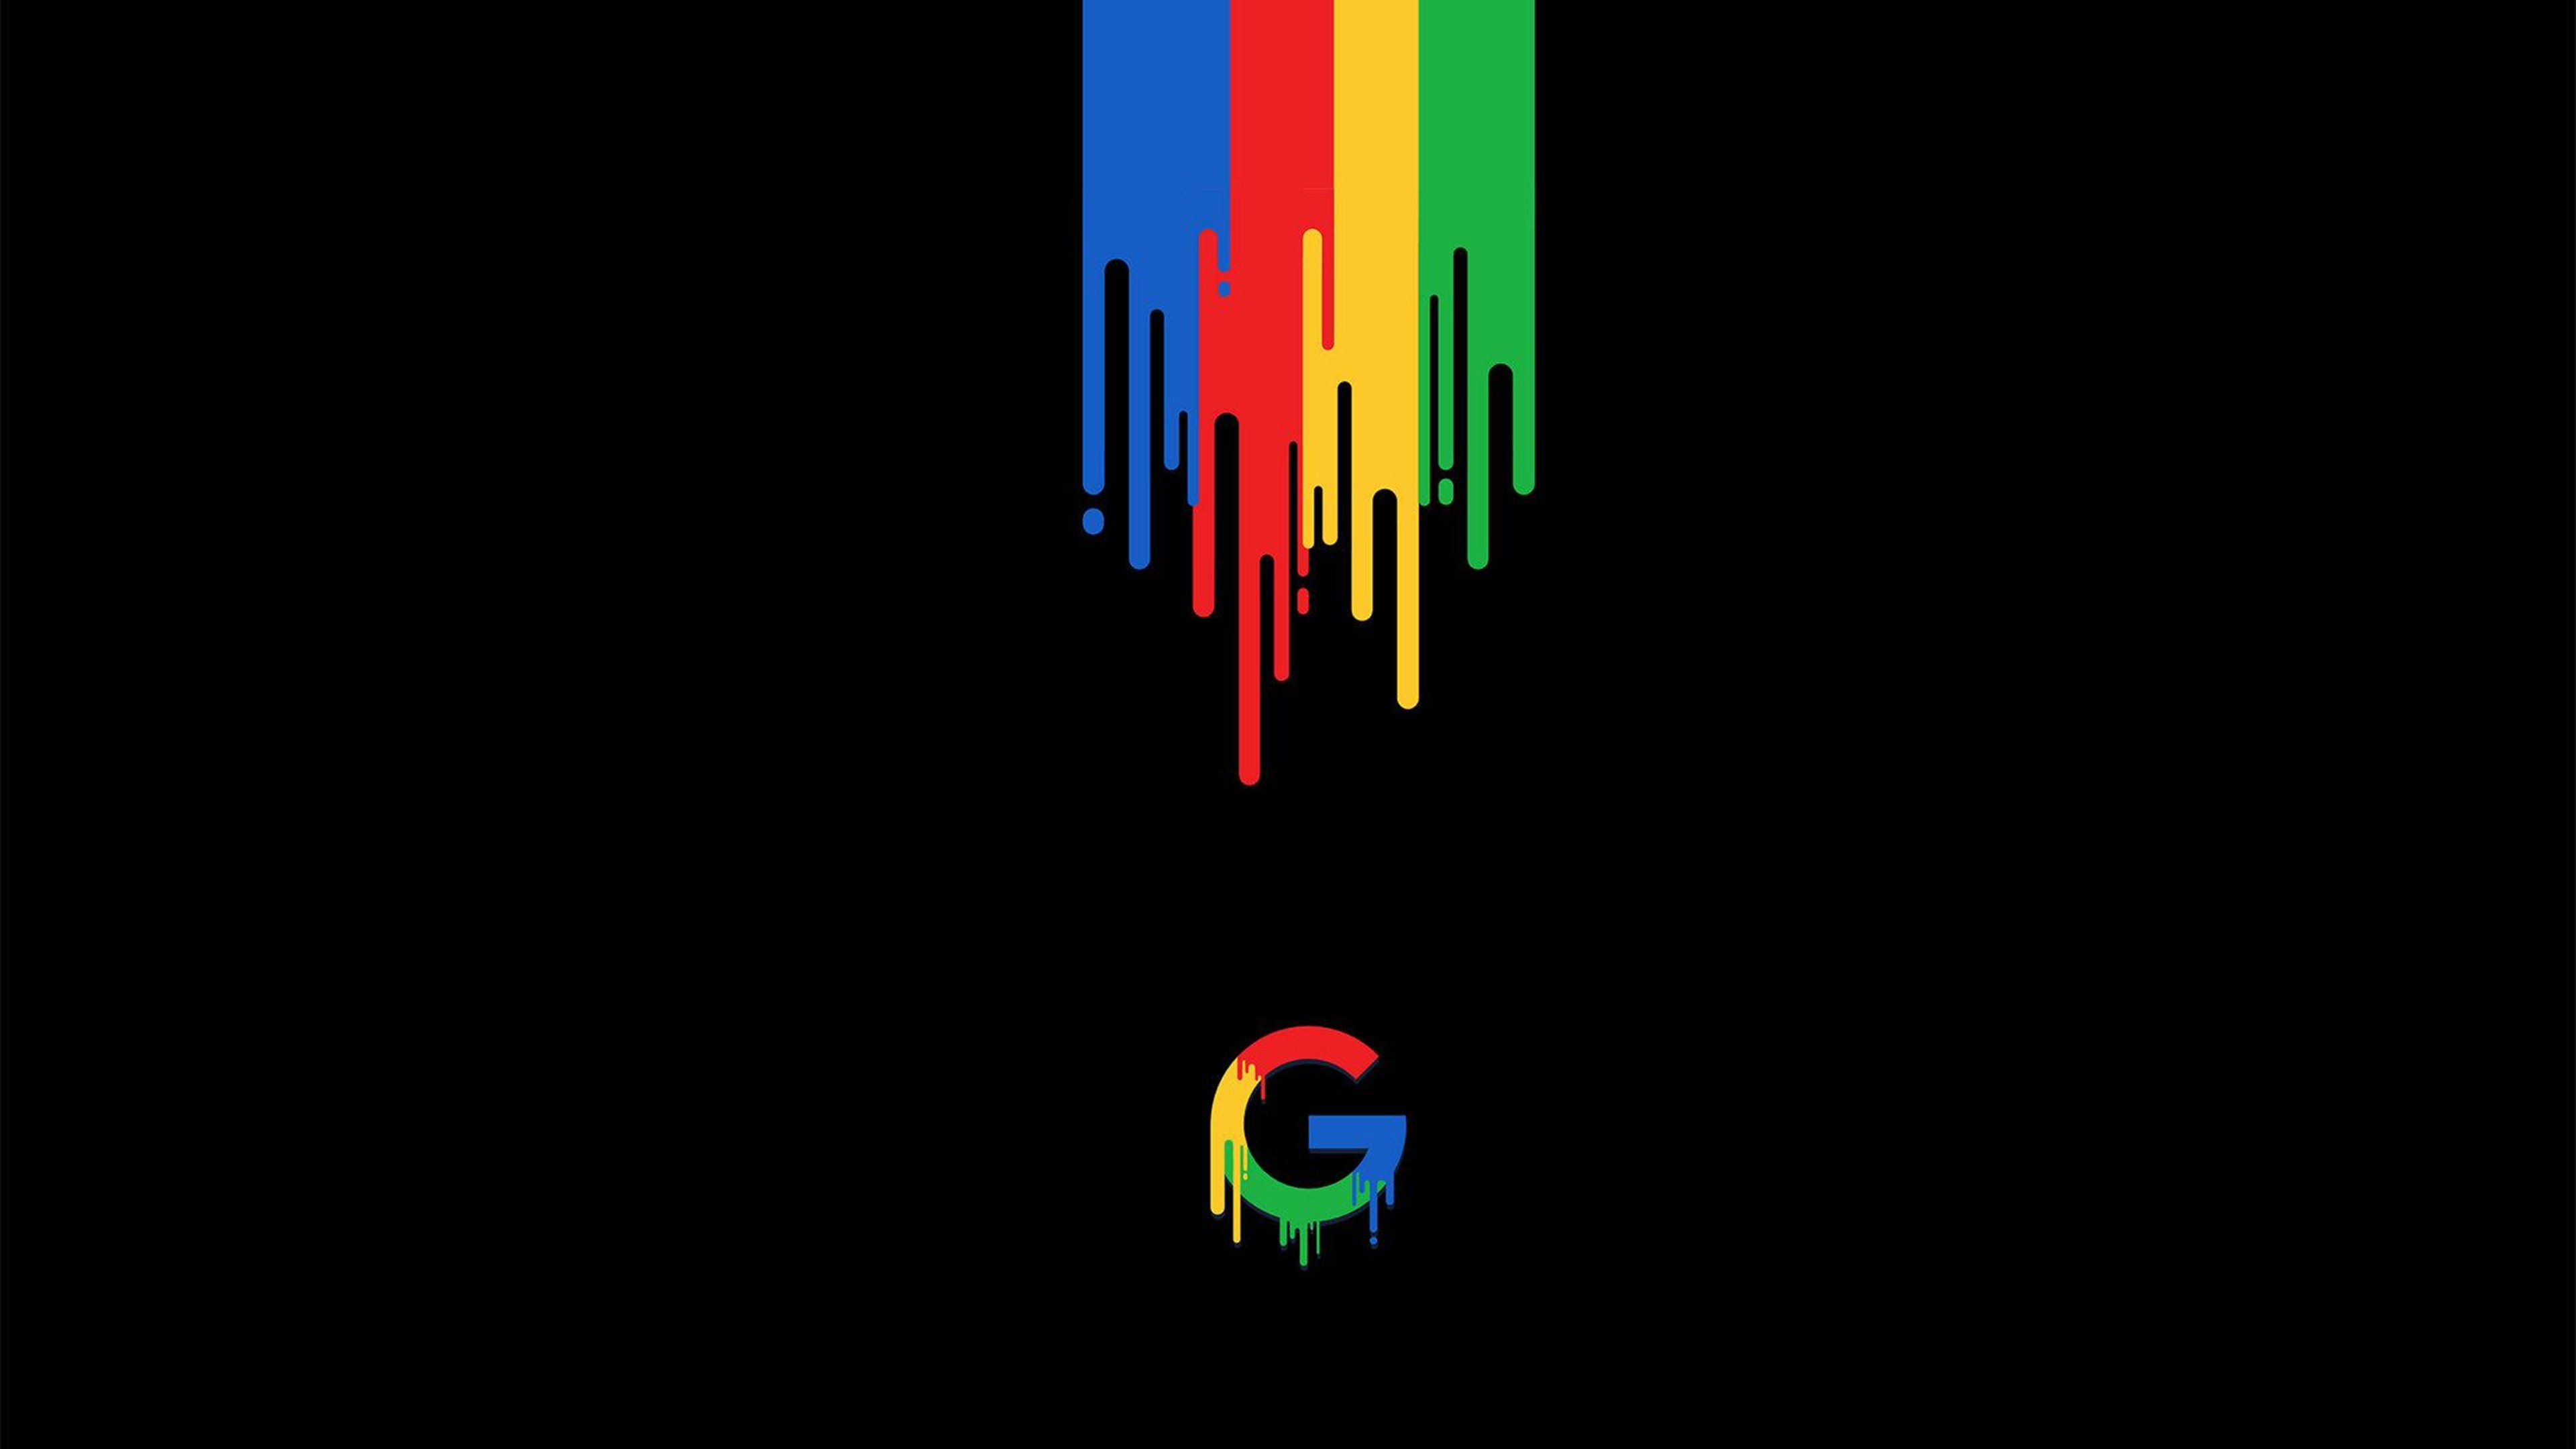 Melting Google Logo Wallpaper 43117.